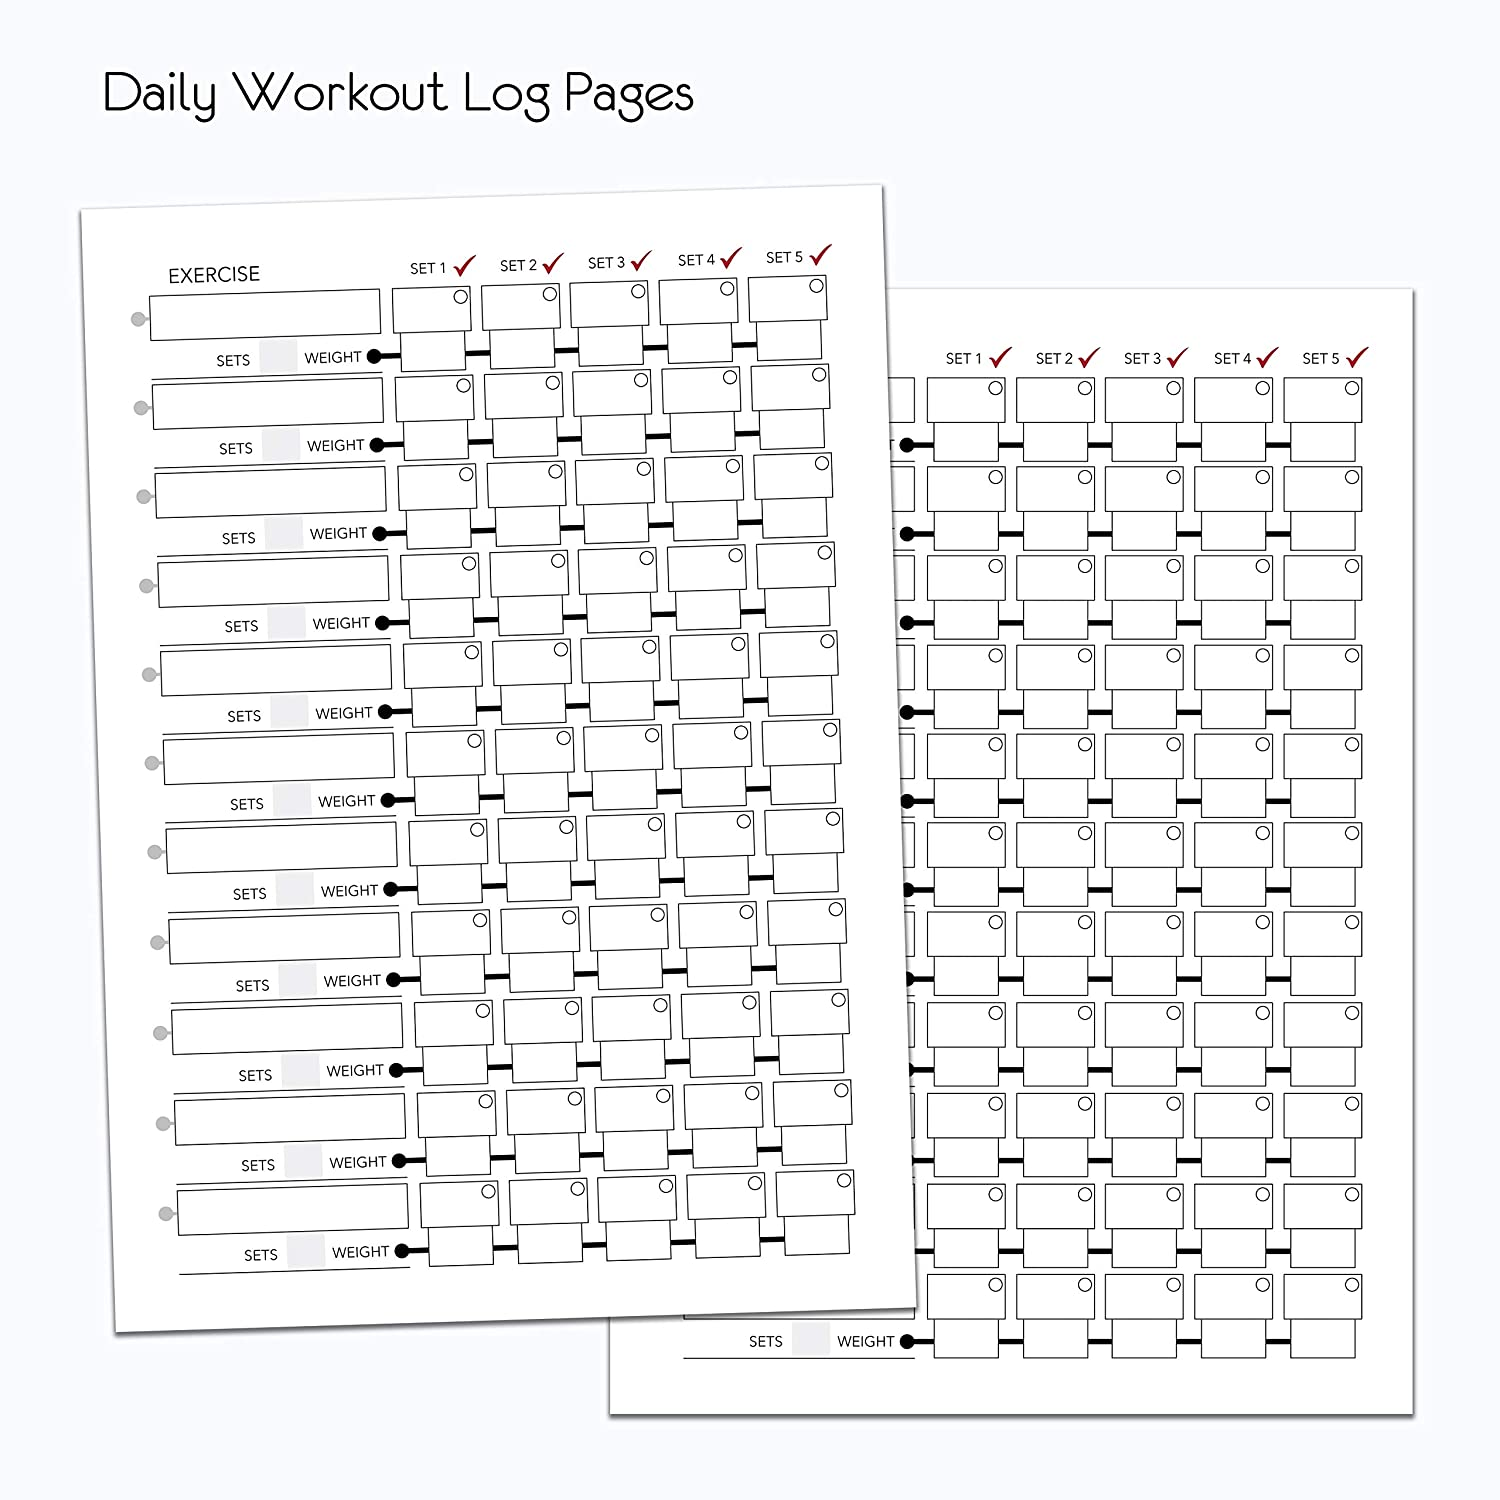 A5 STANDARD WEIGHT TRAINING FITNESS LOG BOOK GYM CROSSFIT DIARY WORKOUT JOURNAL